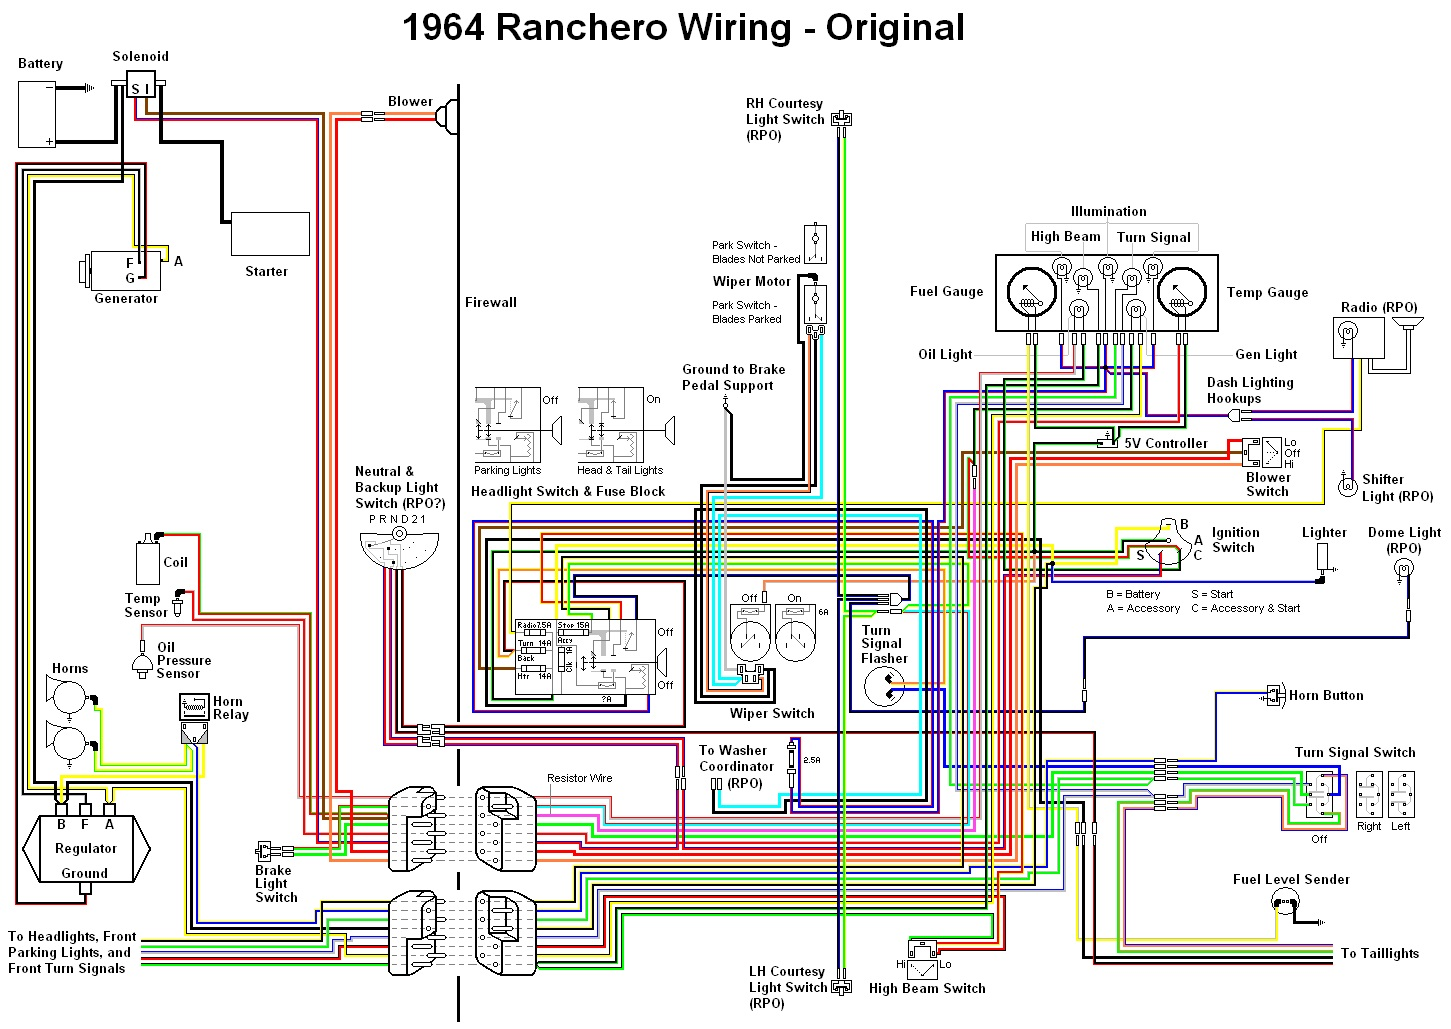 2002 F250 Wiring Diagrams Free Download Diagram Schematic Toro Mower Manual